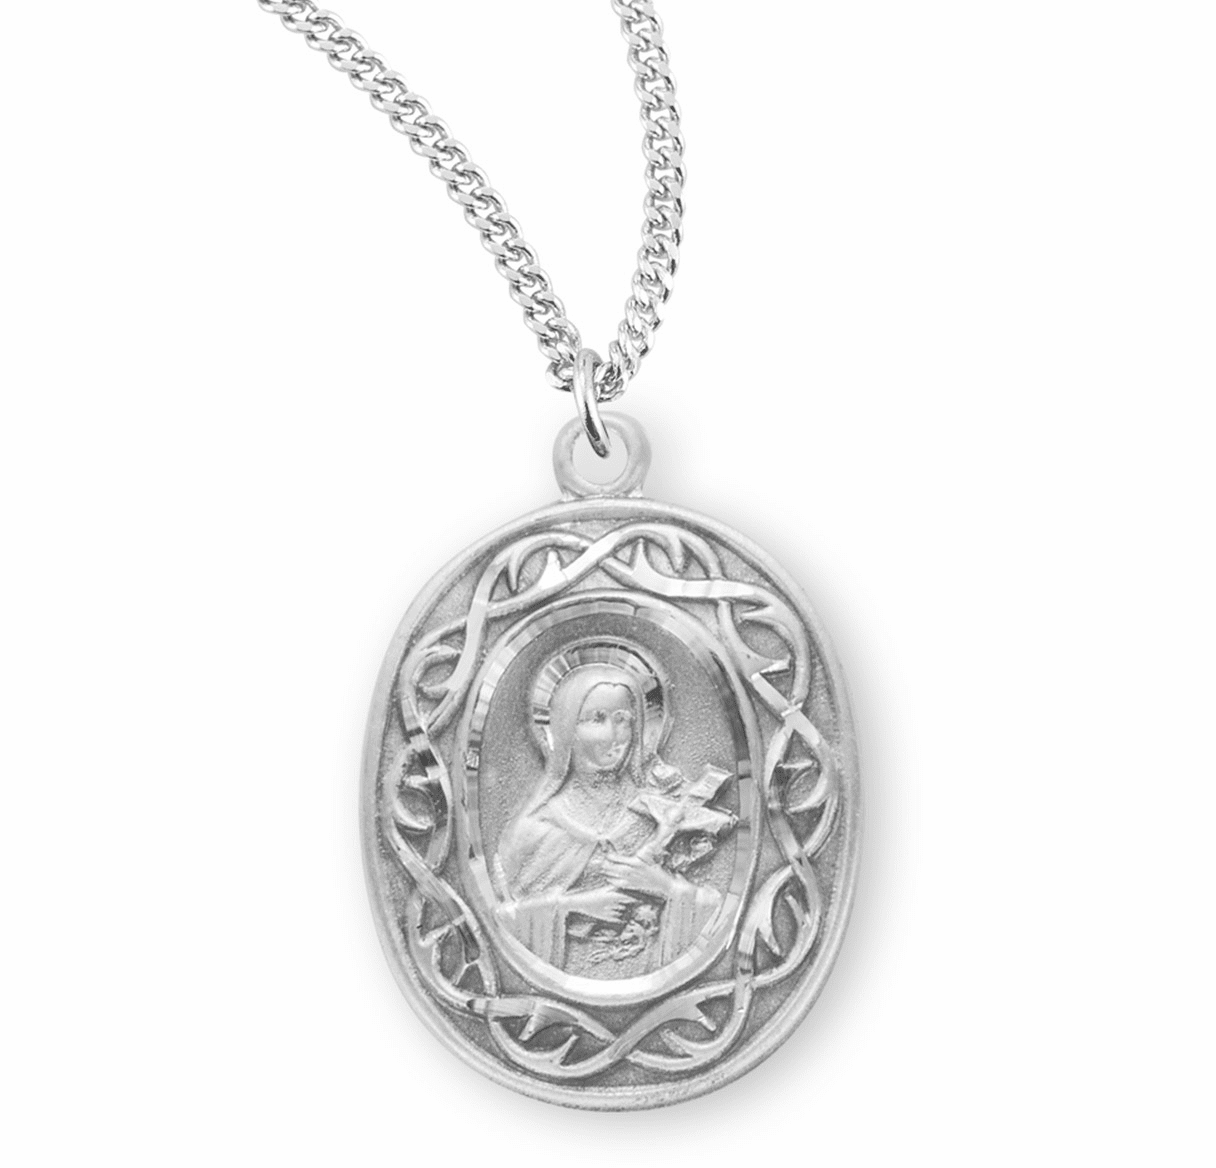 St Therese Crown of Thorns Sterling Silver Medal Necklace by HMH Religious